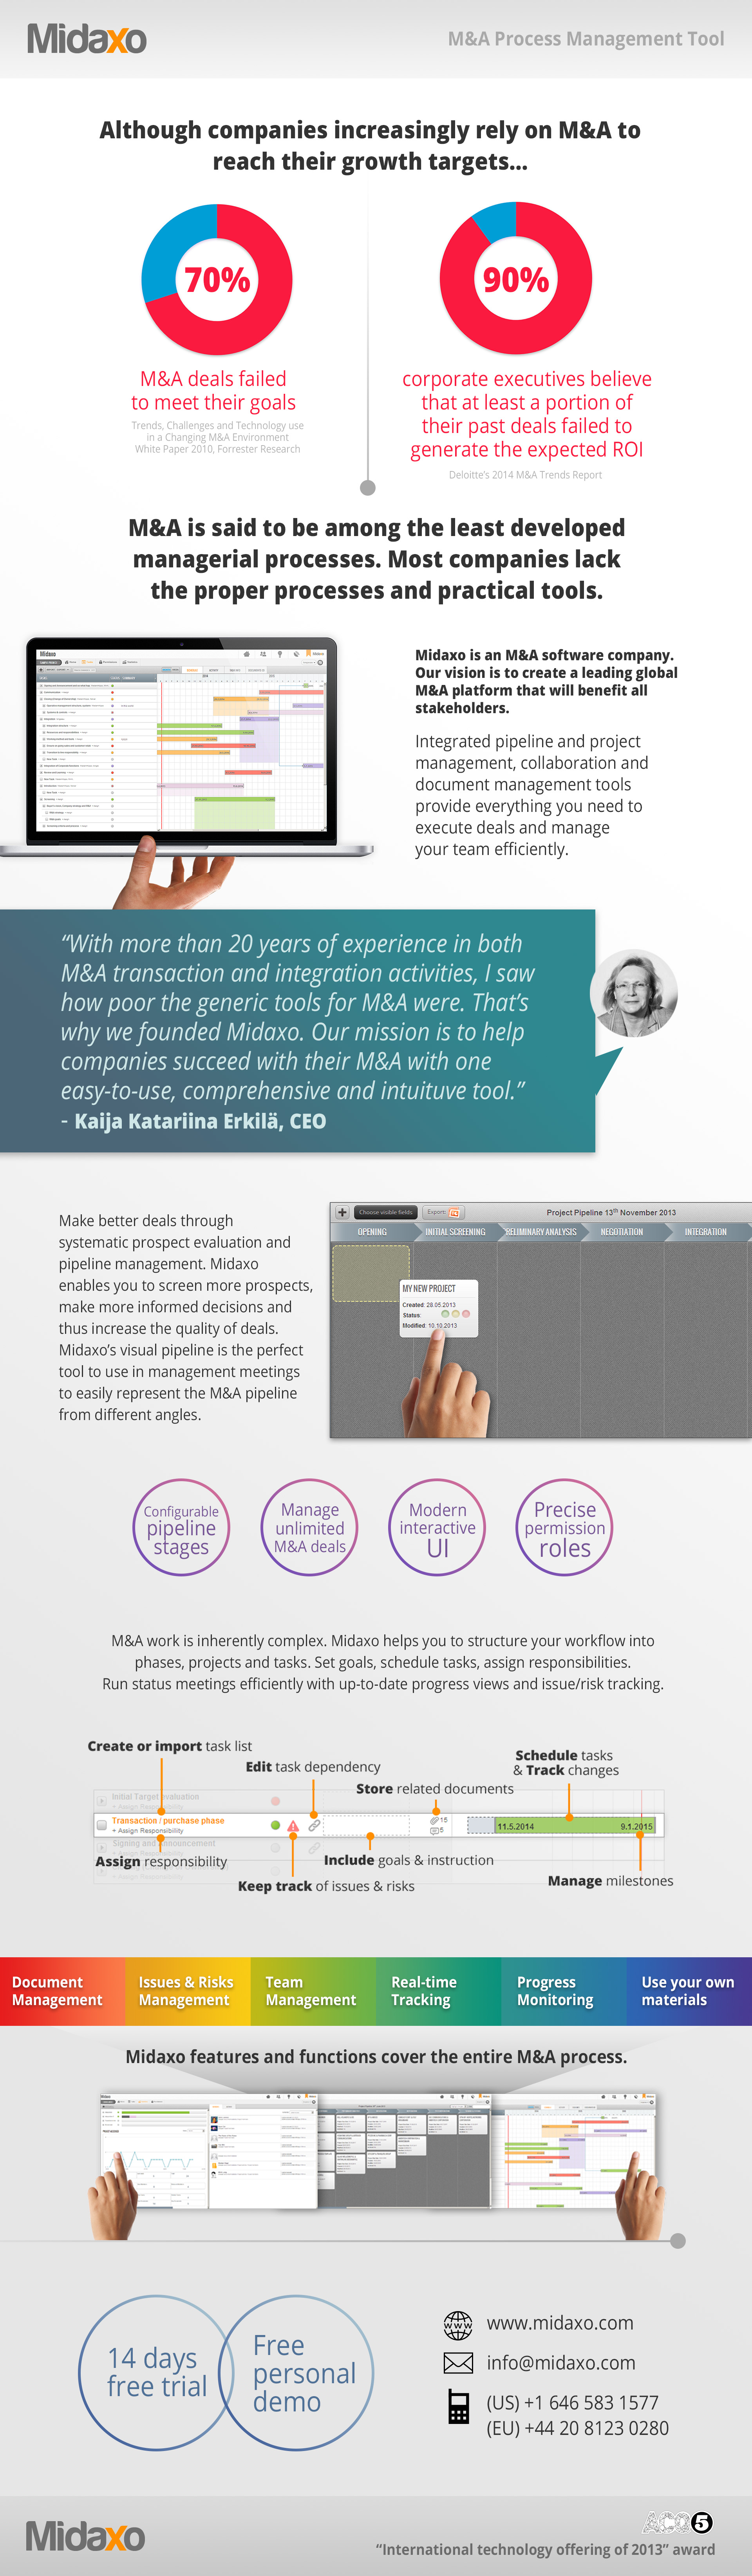 Visual infographic for Midaxo M&A Management Tool (2014)